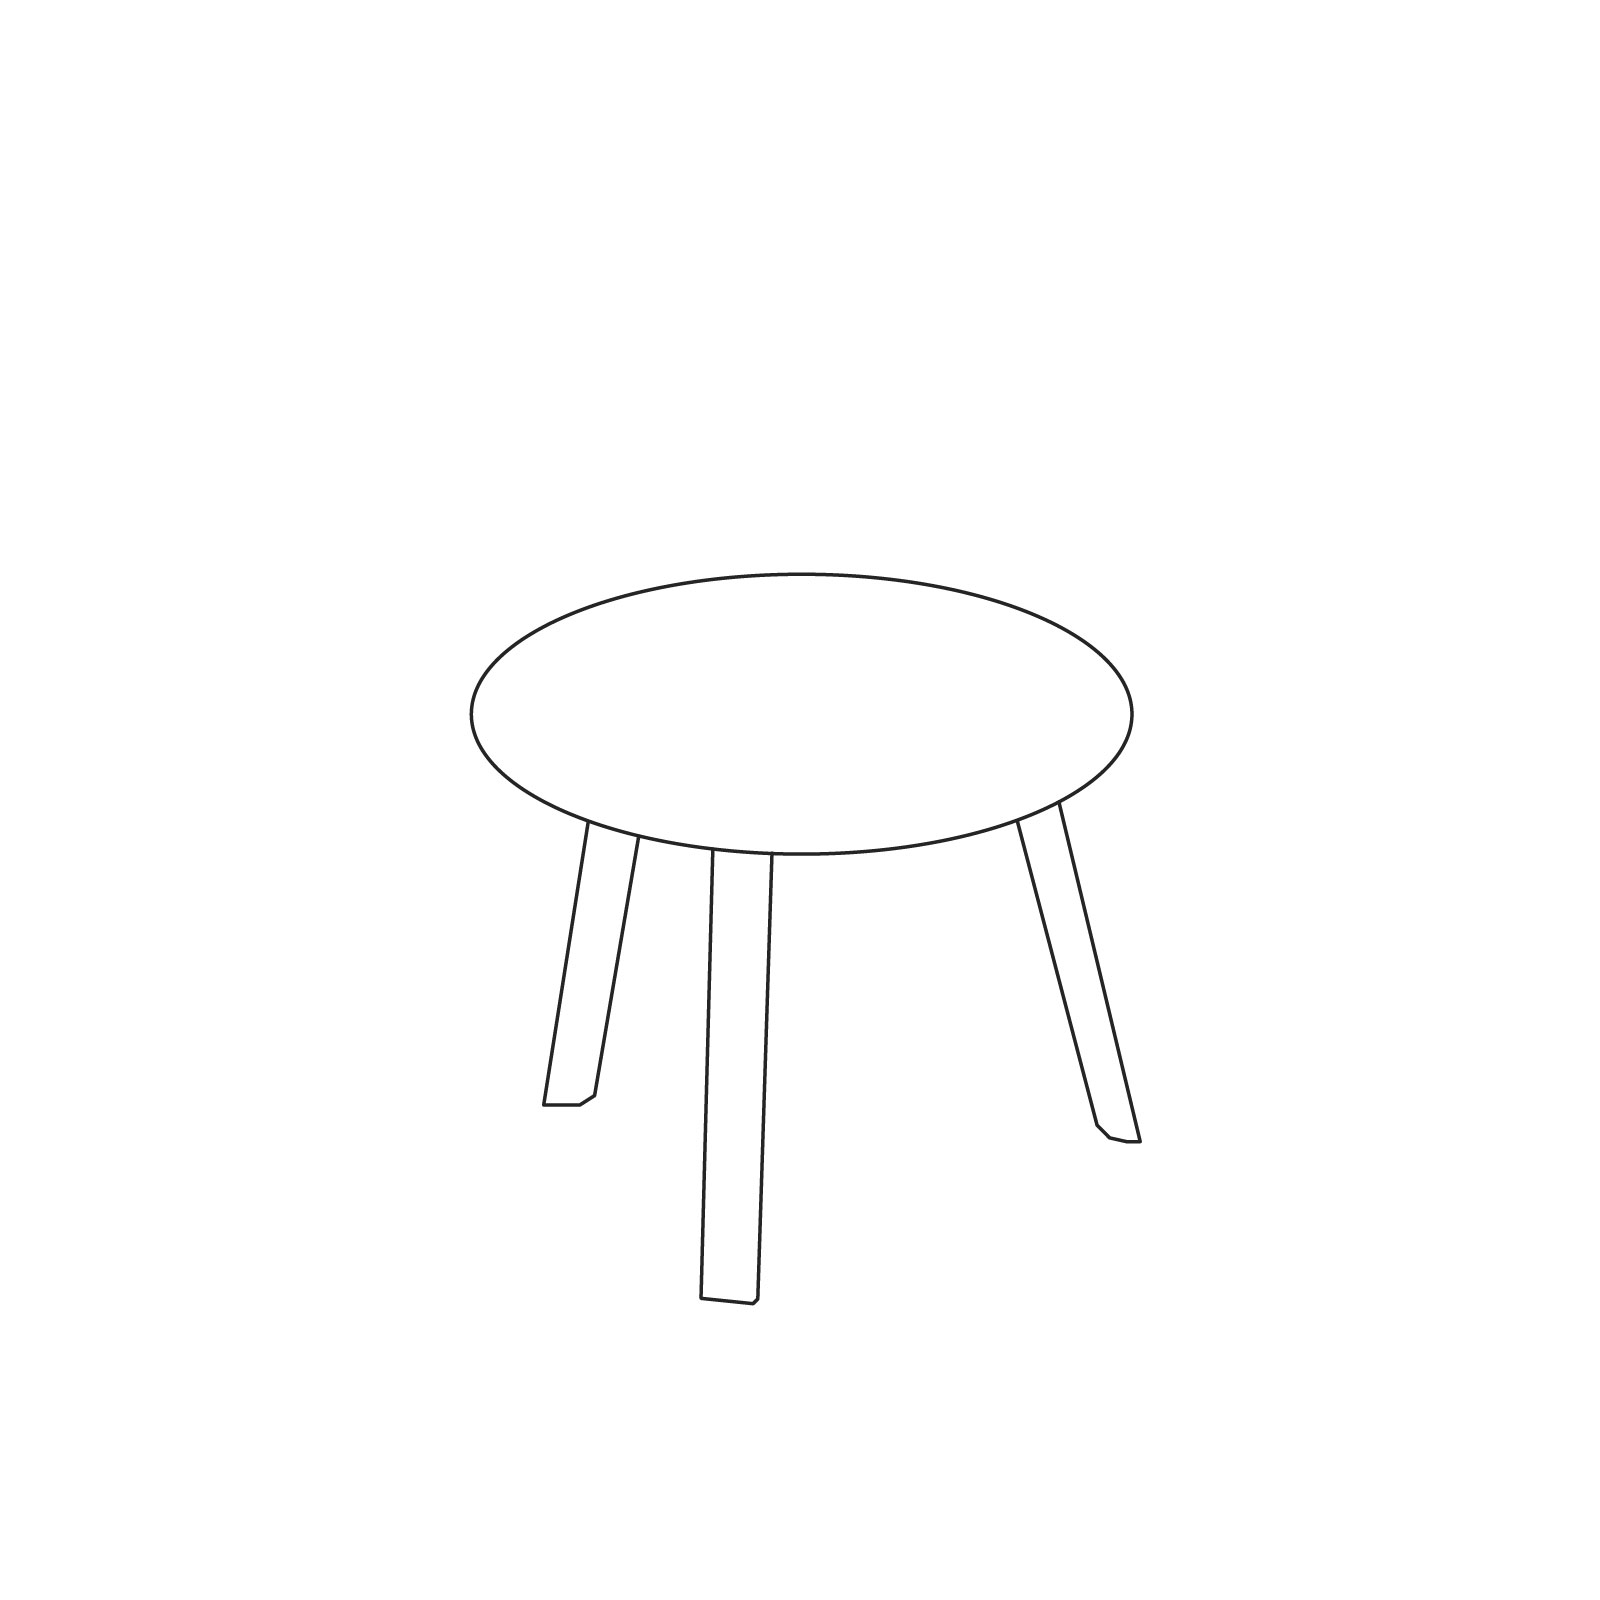 A line drawing of Bella Side Table–Low.